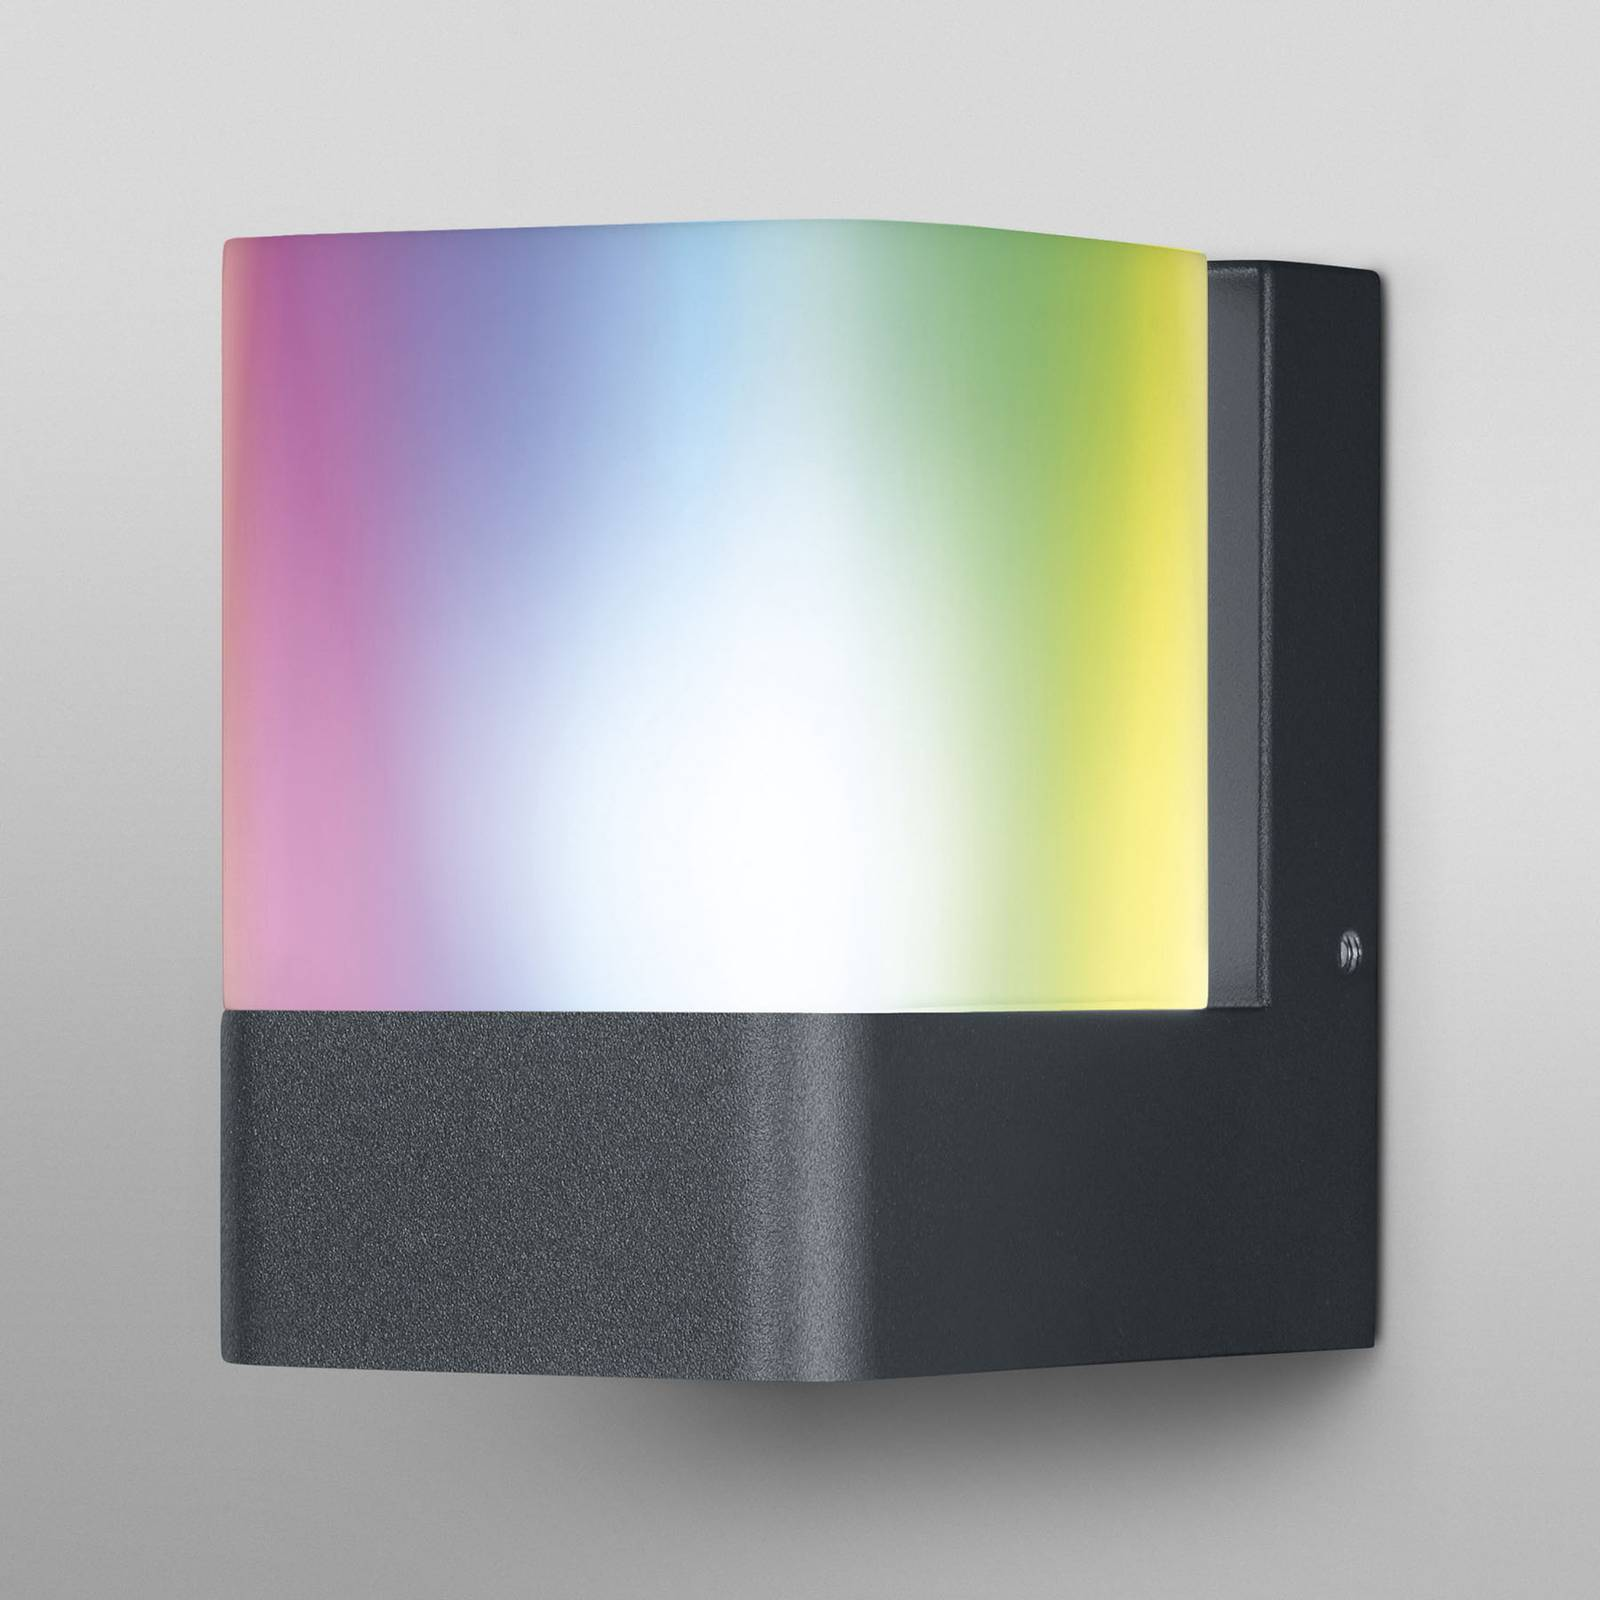 LEDVANCE SMART+ WiFi Cube LED-Wandleuchte RGBW up von LEDVANCE SMART+